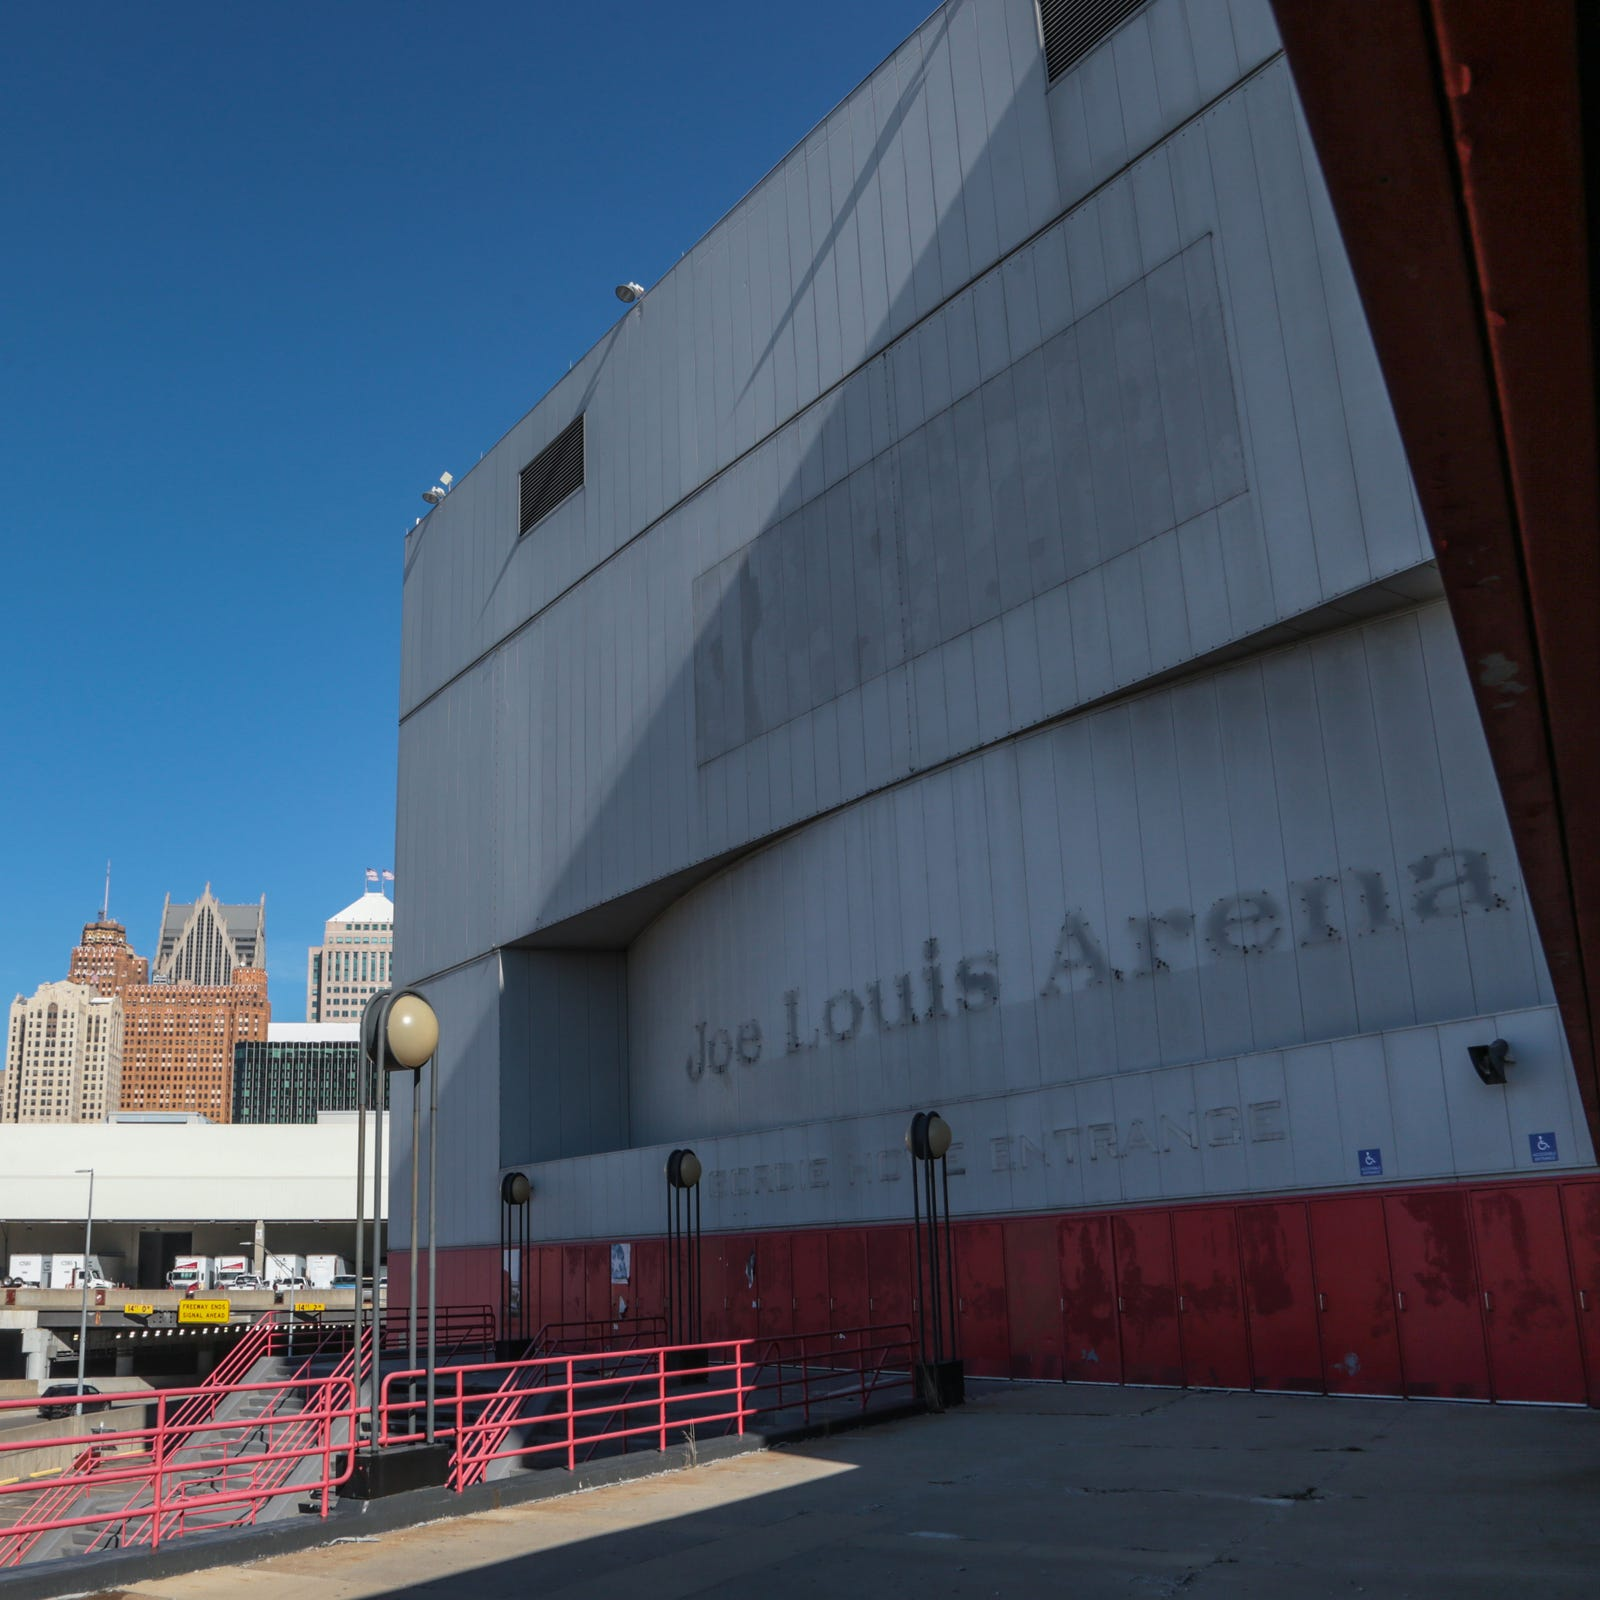 Joe Louis Arena demolition to start soon: Here's what's coming down